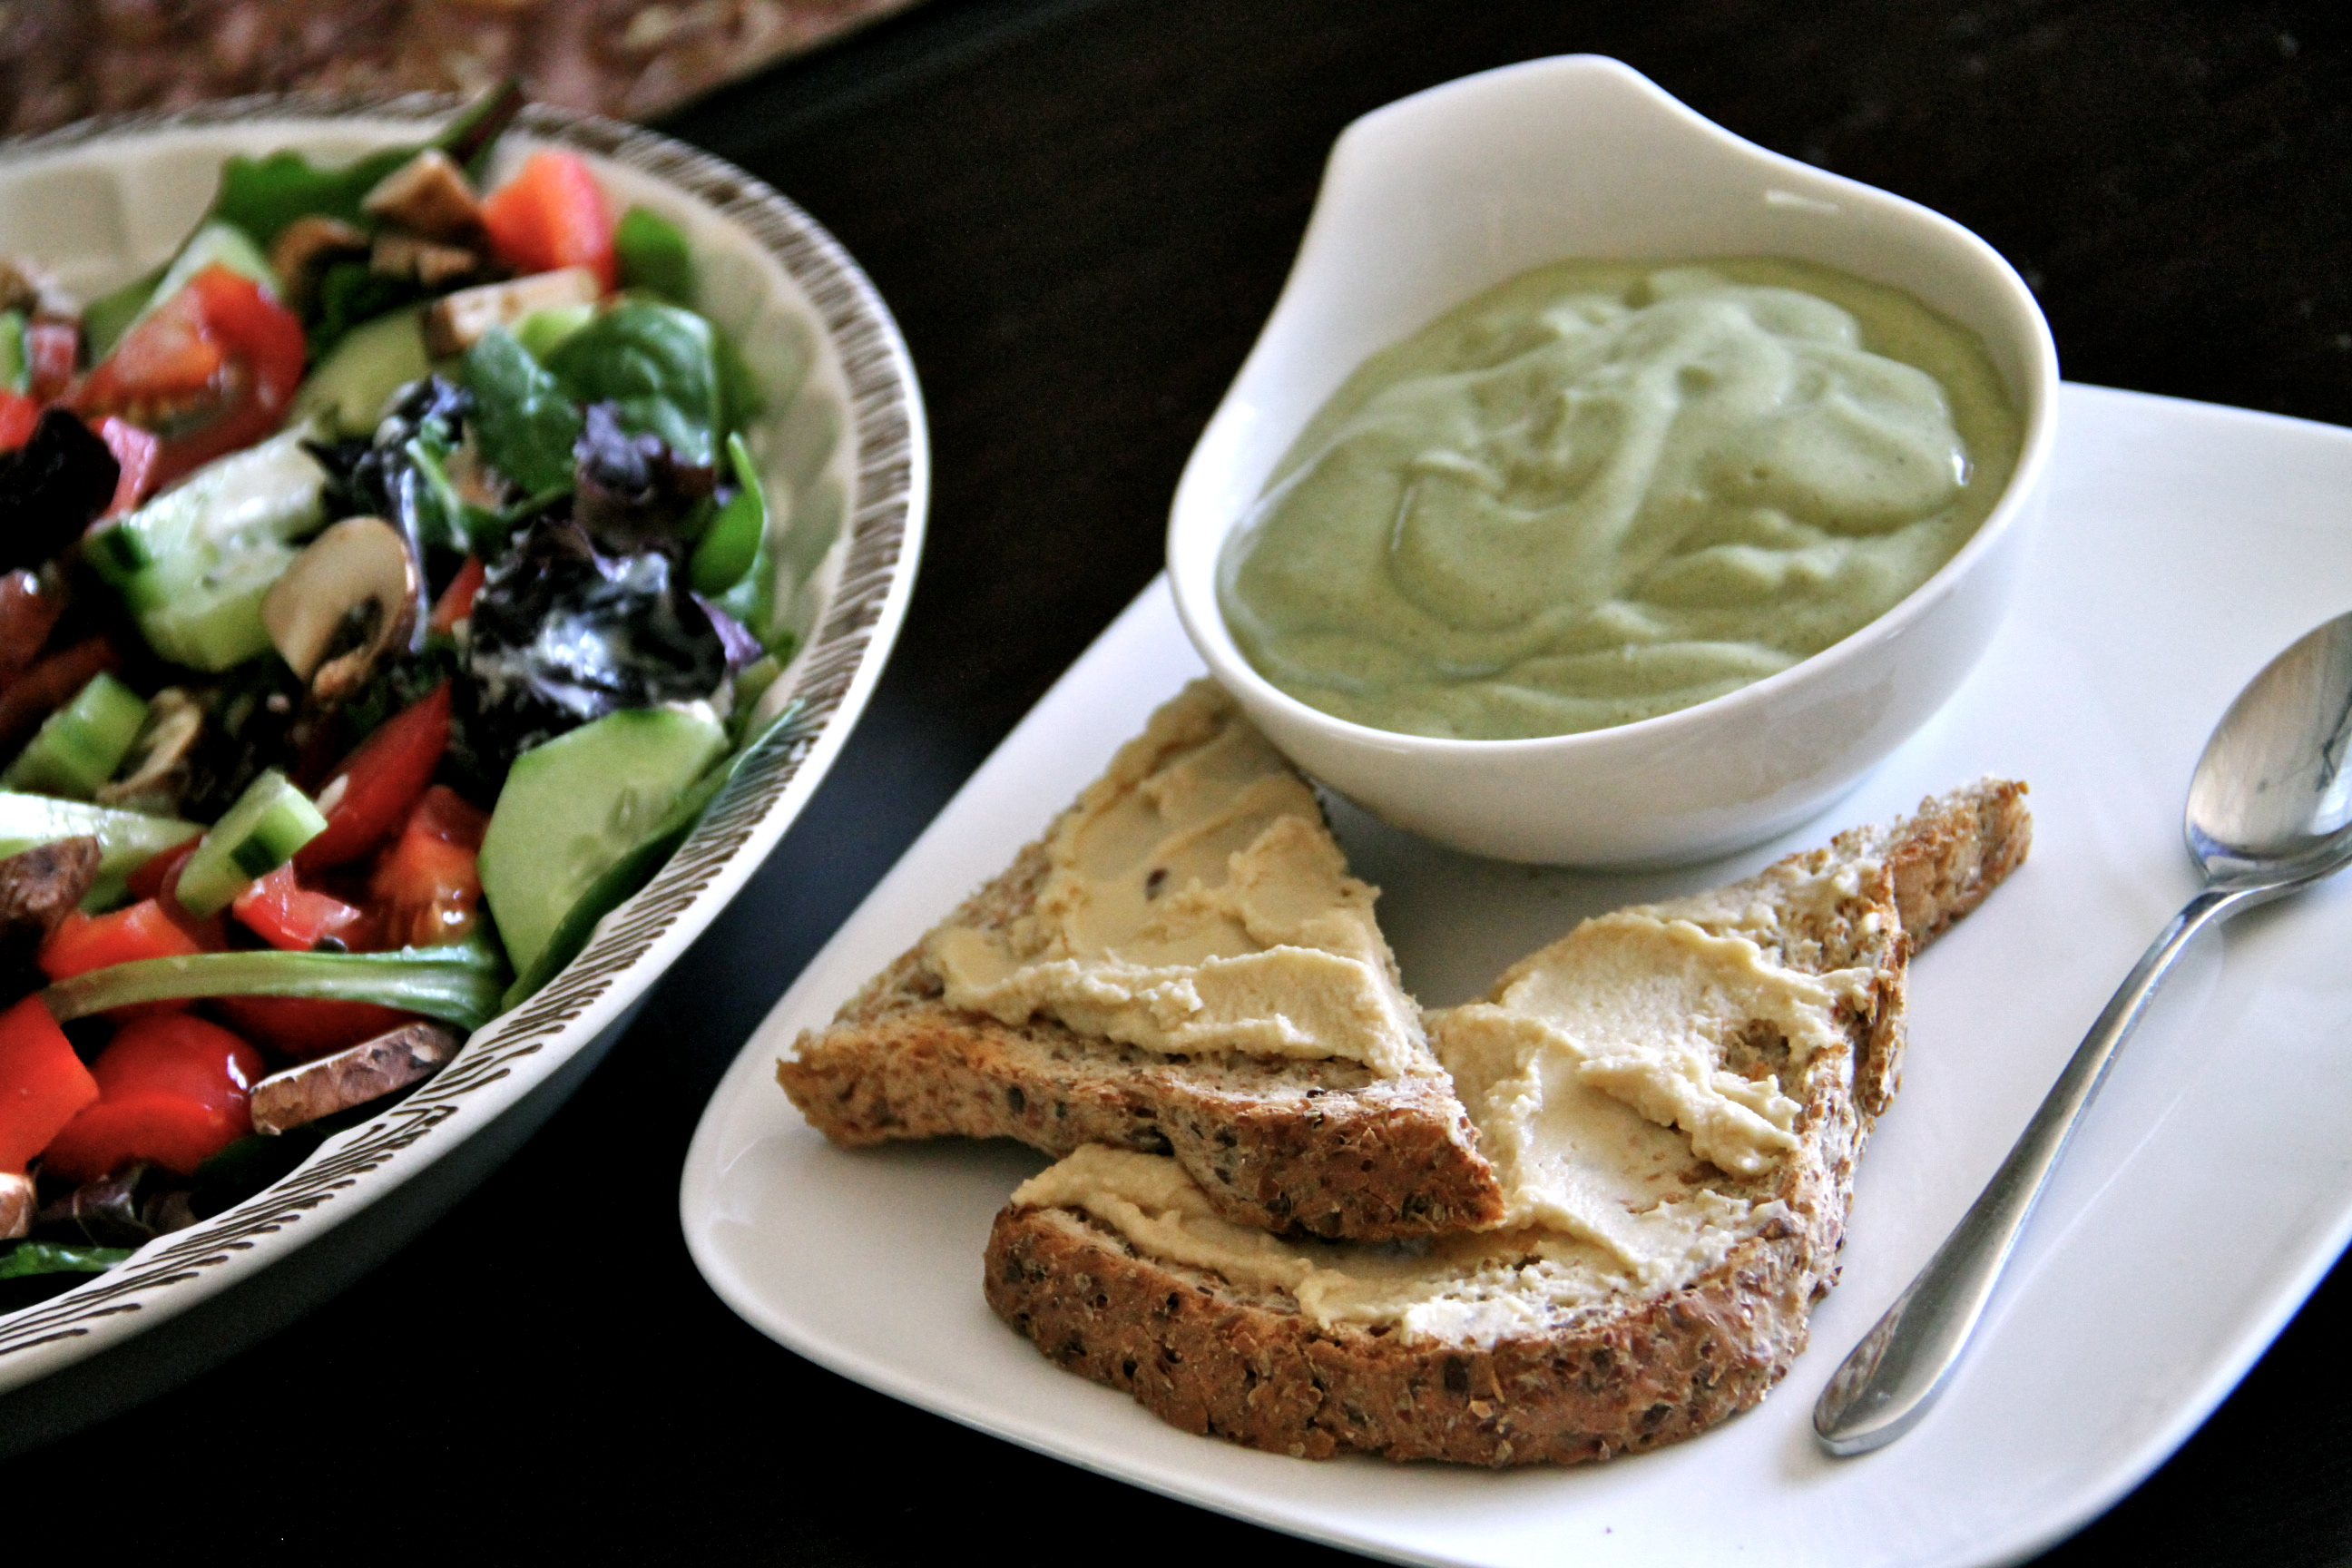 Salad, toast with hummus, bowl of… green goo? More on that in a ...